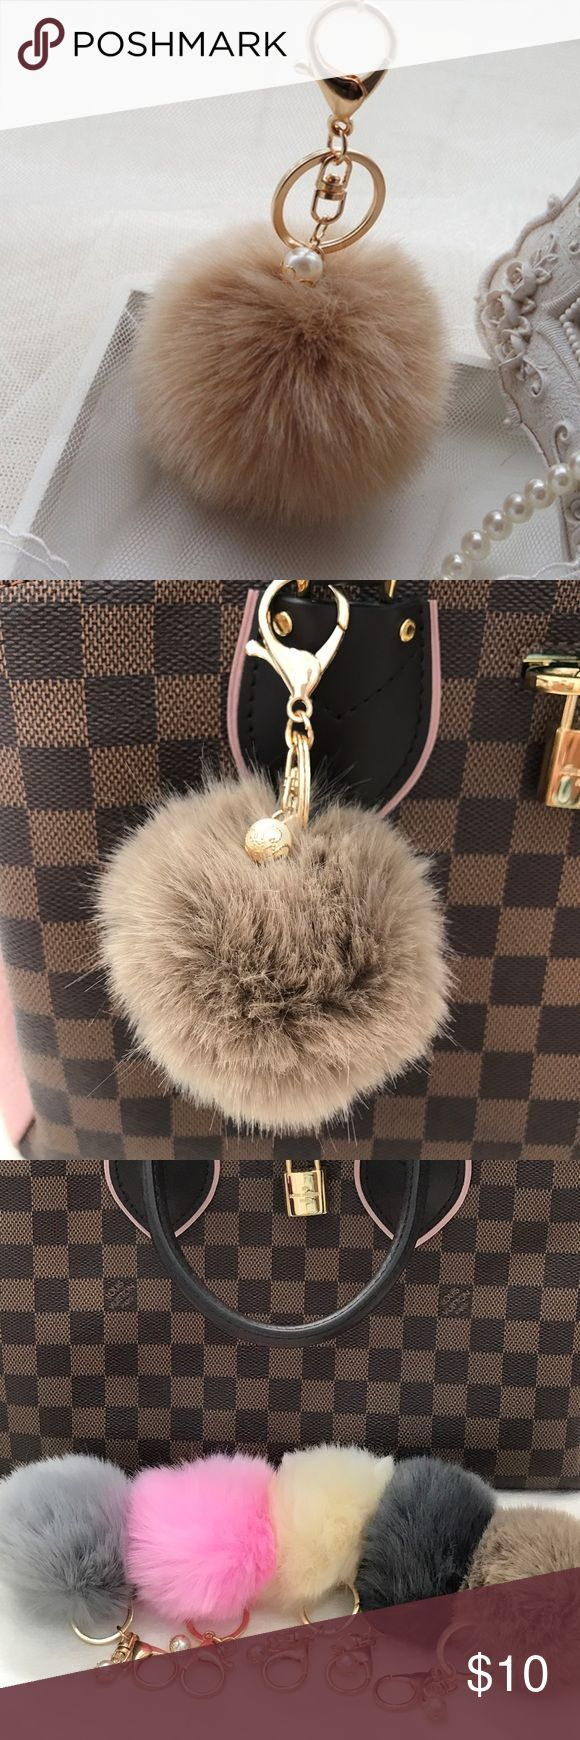 Cute Fur Ball Keychain Keychain Cute Simulation Rabbit Fur Ball Key Chain For Car Key Ring Car Ornaments      Item Type:Key Chains Metals Type:Alloy Material:Imitation rabbit hair Shape\pattern:Round Size:8cm Color: Gold chain, Brown/Mocha Fur...---Price is FIRM Accessories Key & Card Holders